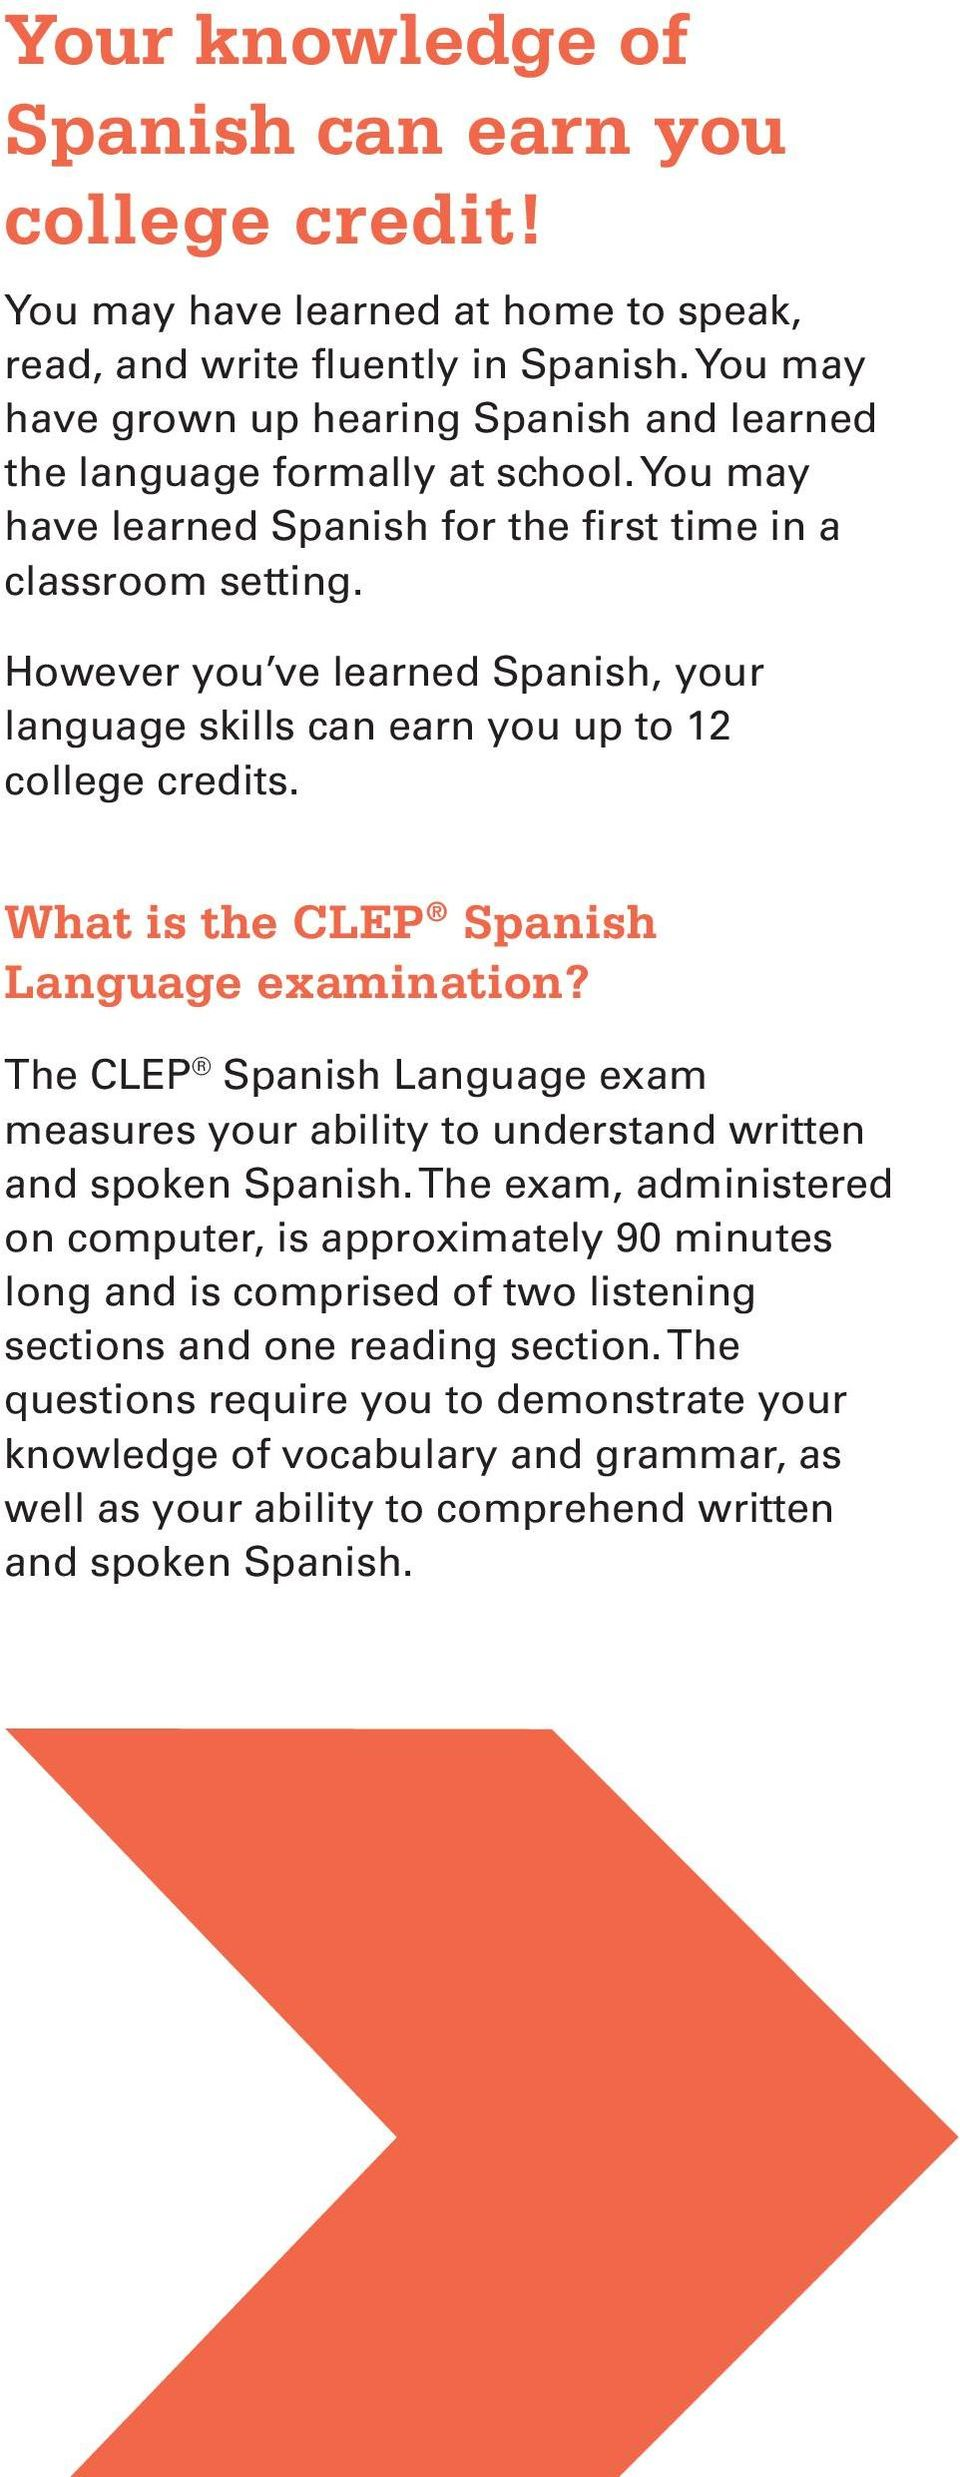 However you ve learned Spanish, your language skills can earn you up to 12 college credits. What is the CLEP Spanish Language examination?